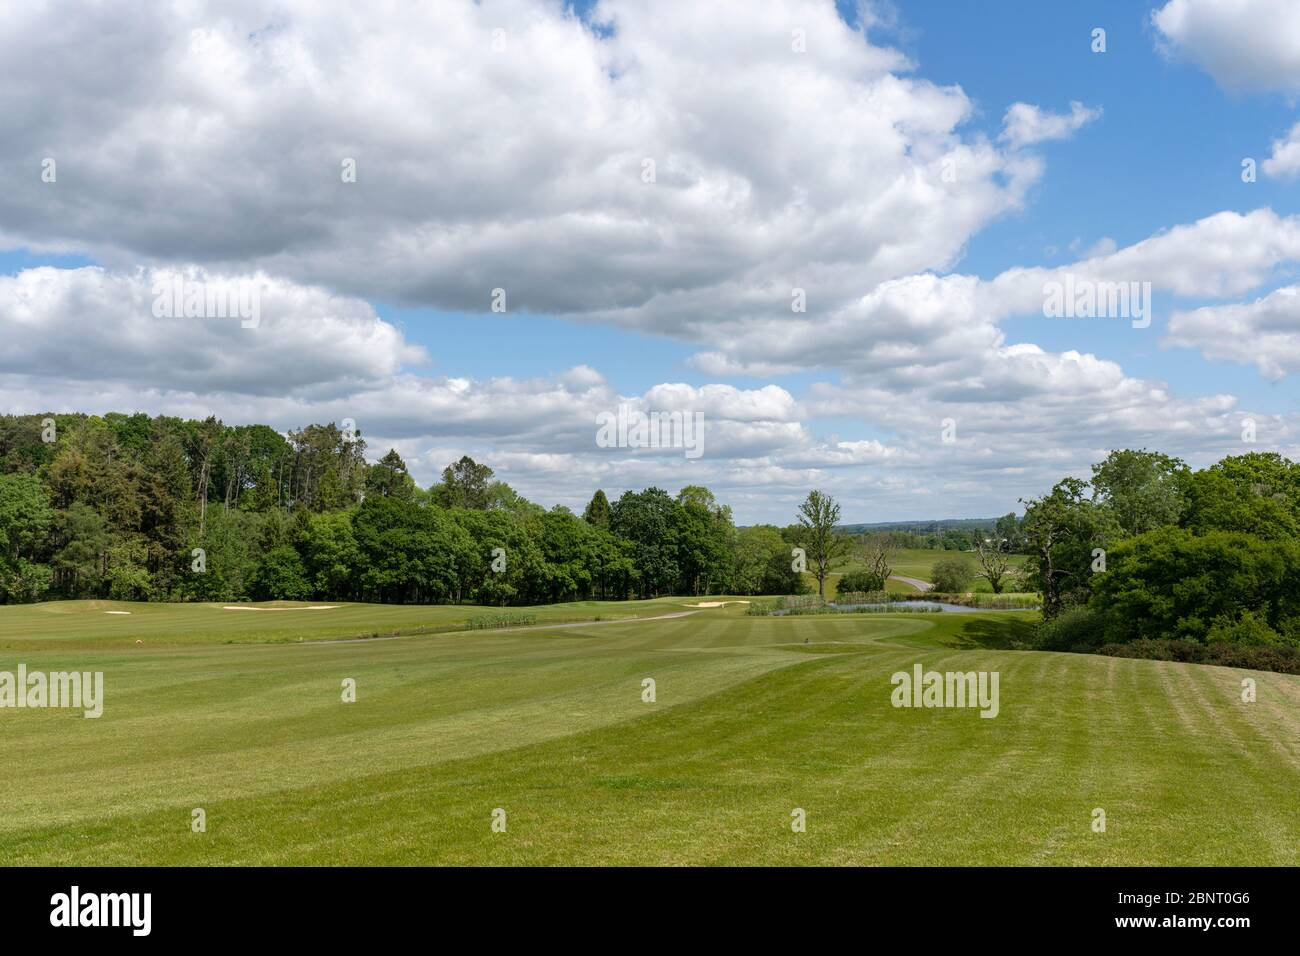 View of fairway and Hampshire landscape in the background at Boundary Lakes Golf Course, The Ageas Bowl, Botley Road, West End, Hampshire, England, UK Stock Photo